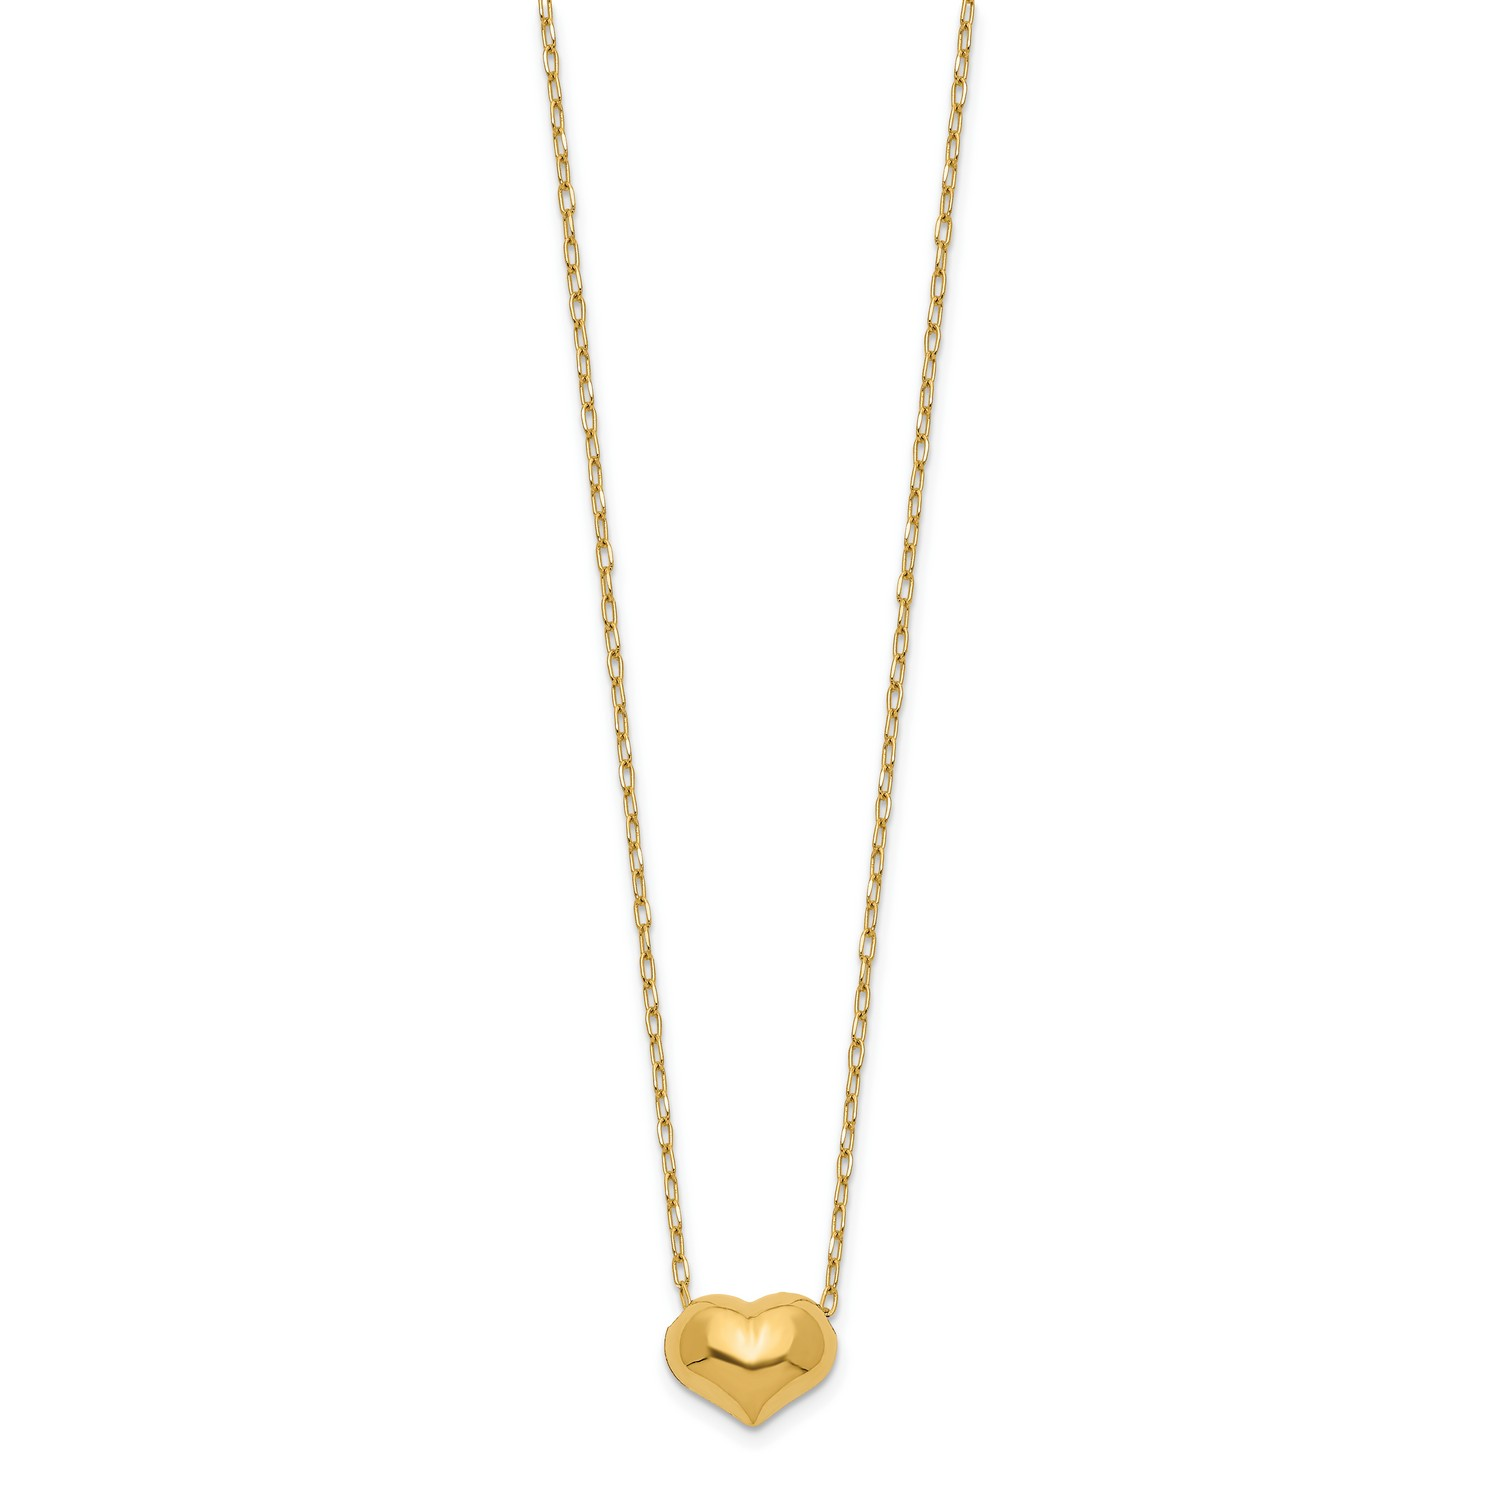 14kt Yellow Gold Madi K Small Hollow Heart w// Chain Necklace; 16 inch